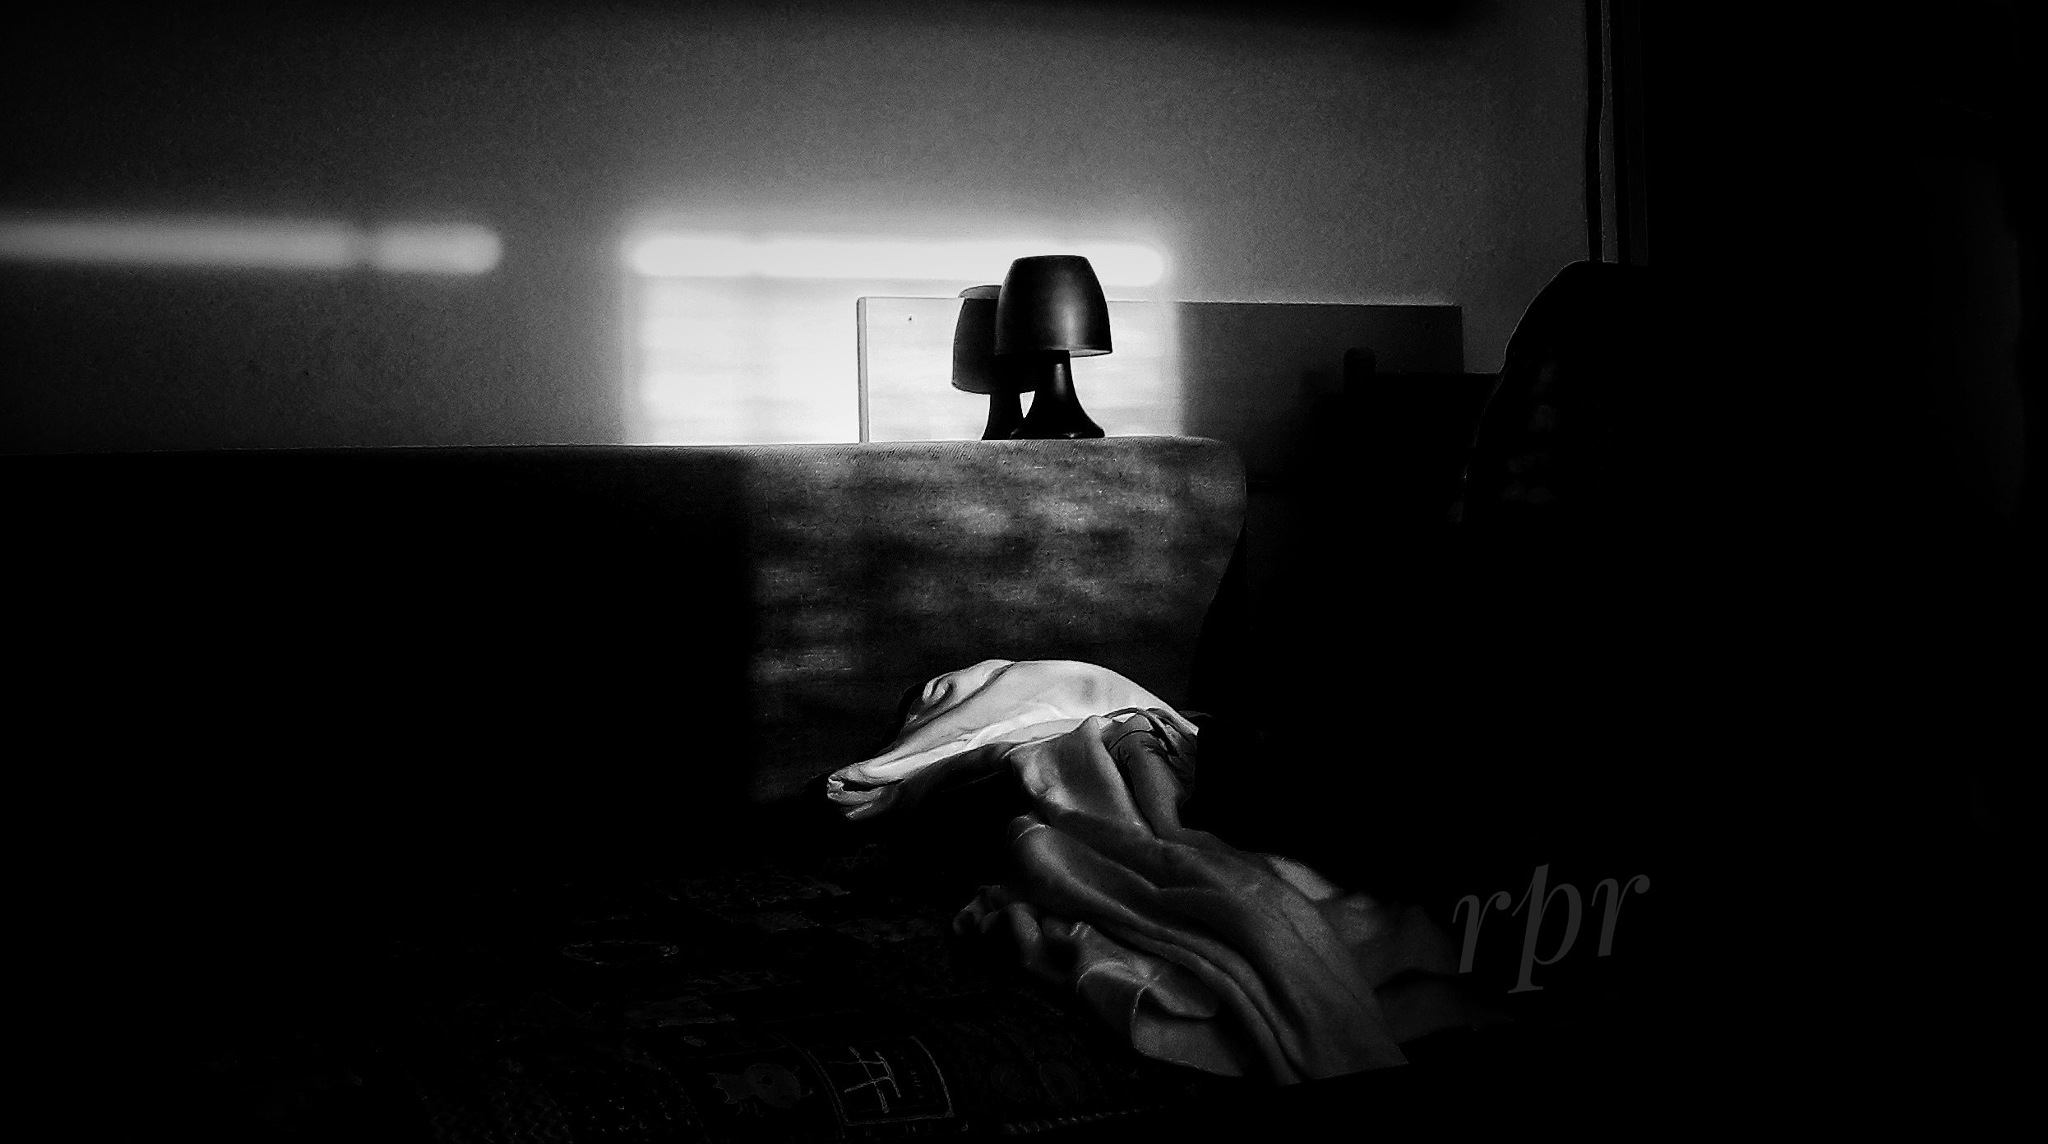 My little apartment :-) Alone :-)) by Robert Pojedinec